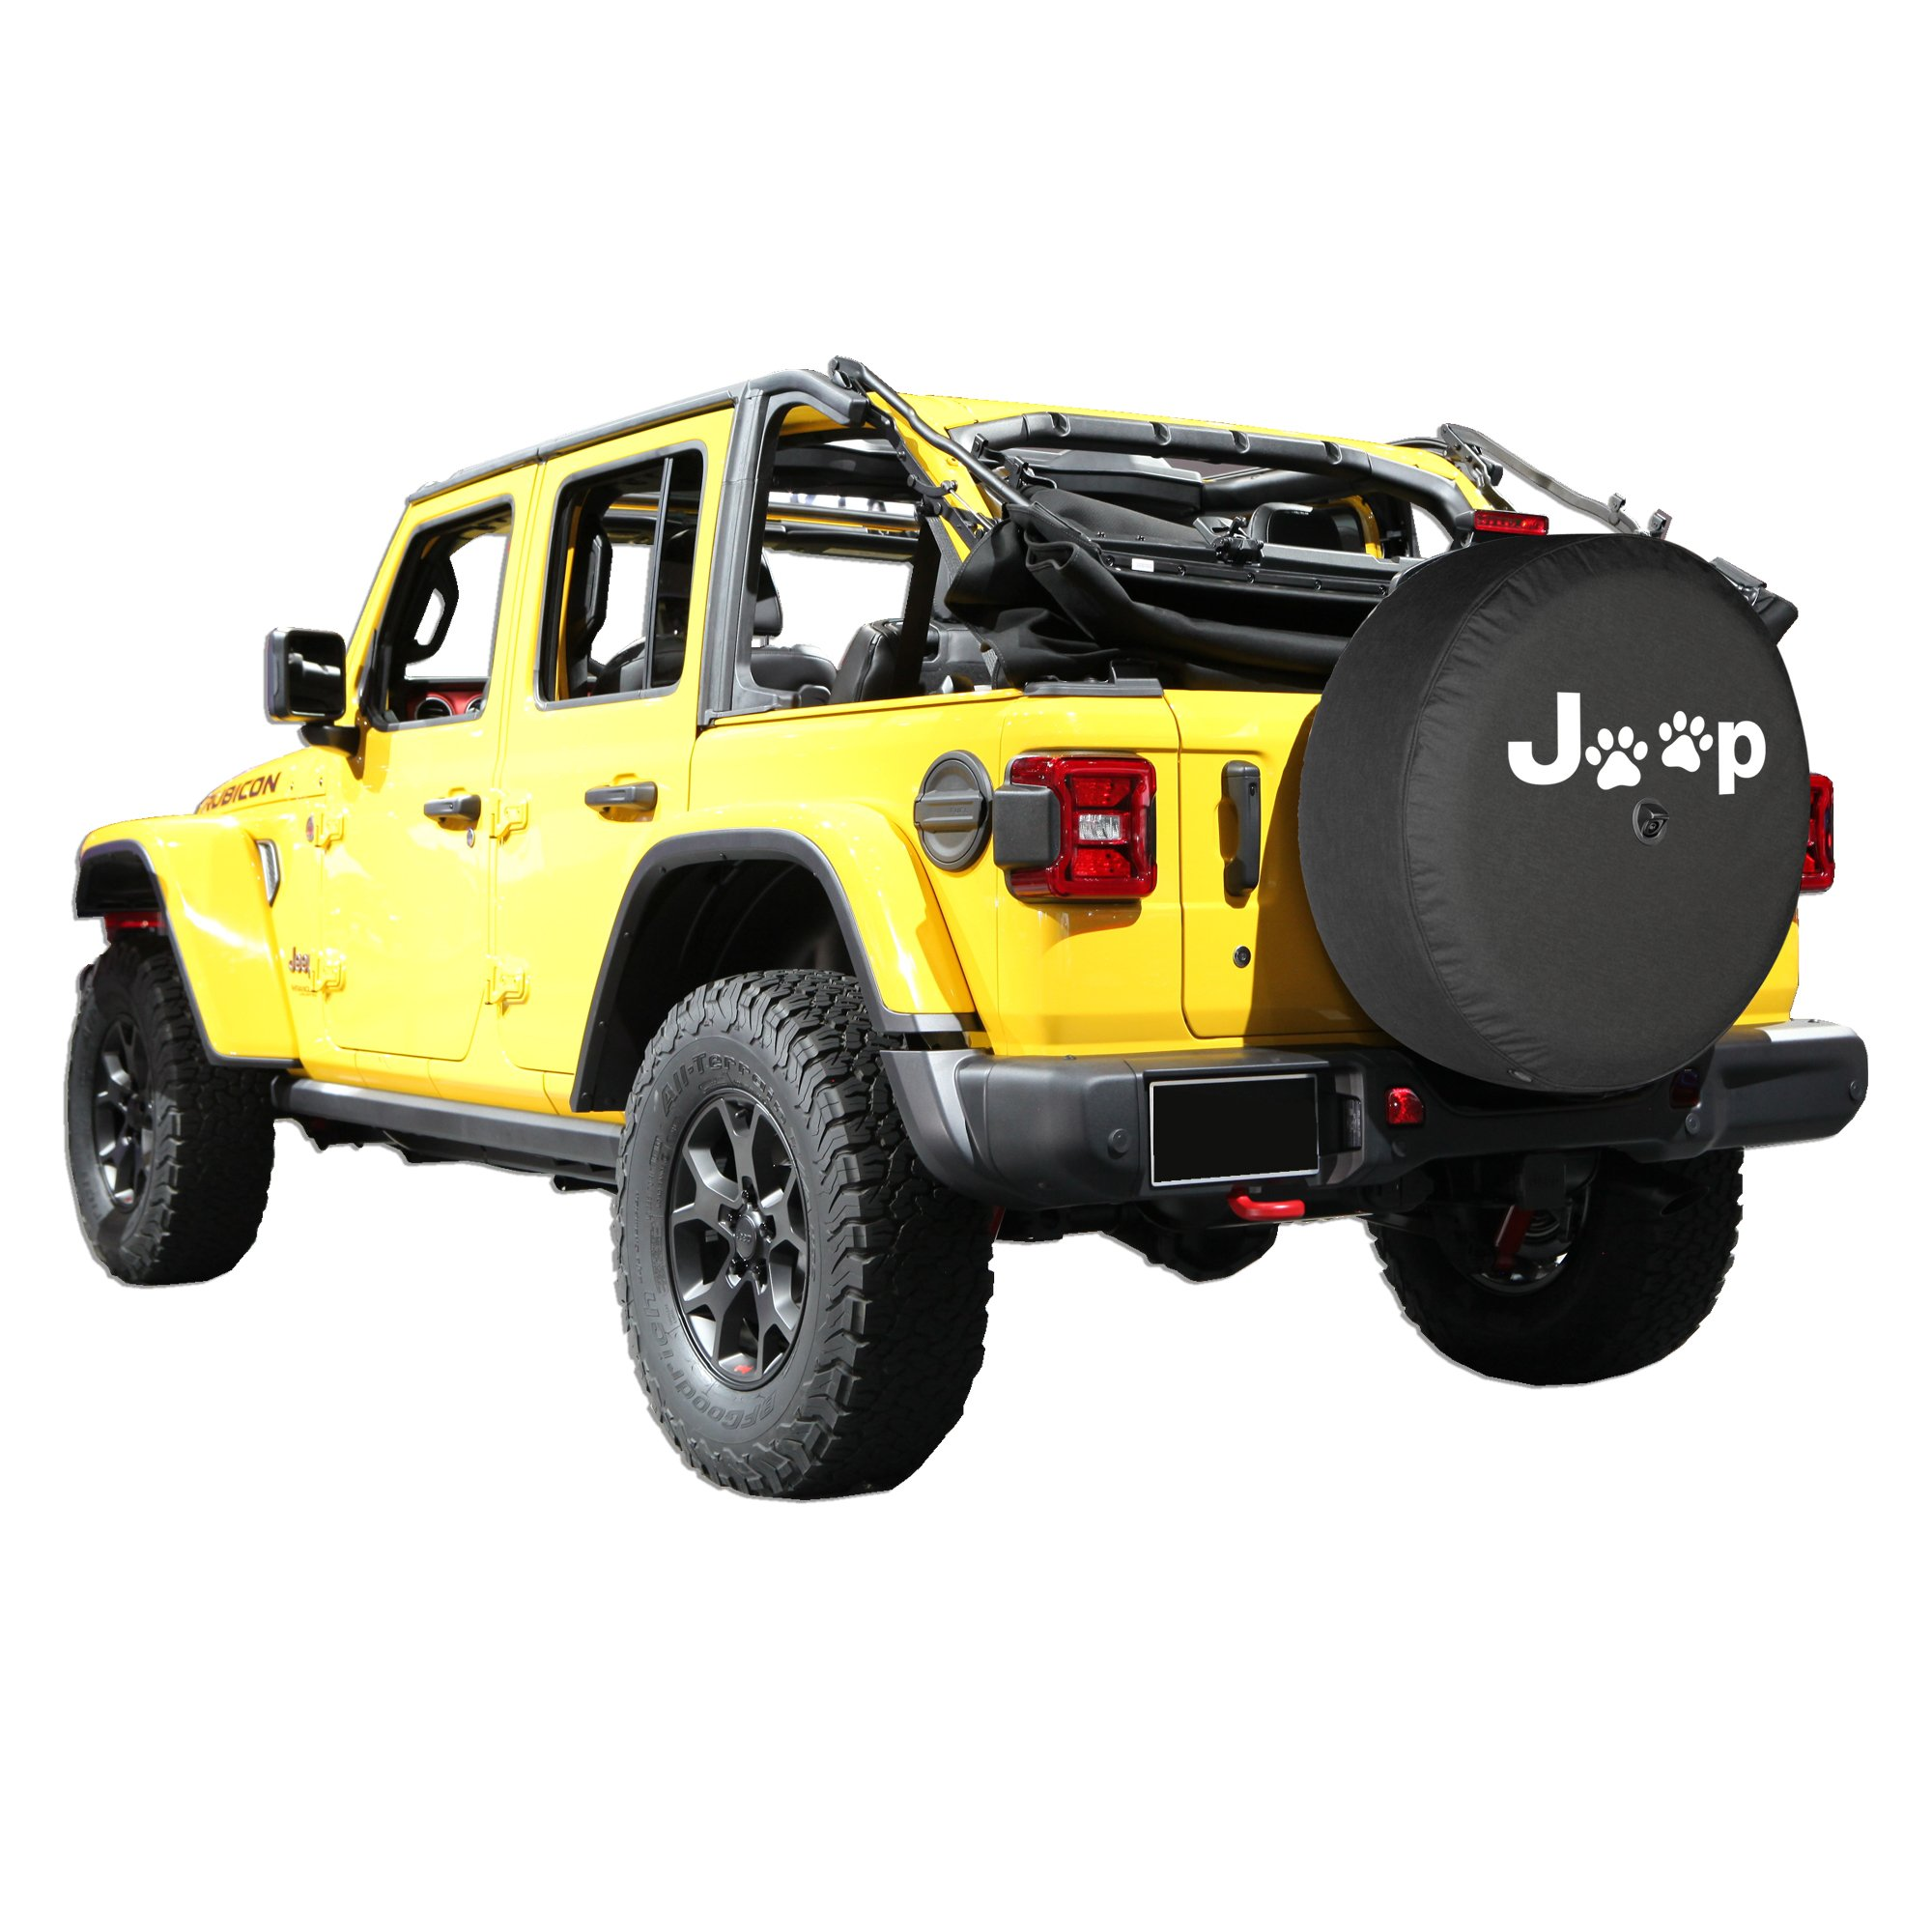 Boomerang 2018 Jeep Wrangler Rubicon JL & JLU - 33'' Soft Tire Cover - Jeep Paws by Boomerang (Image #4)